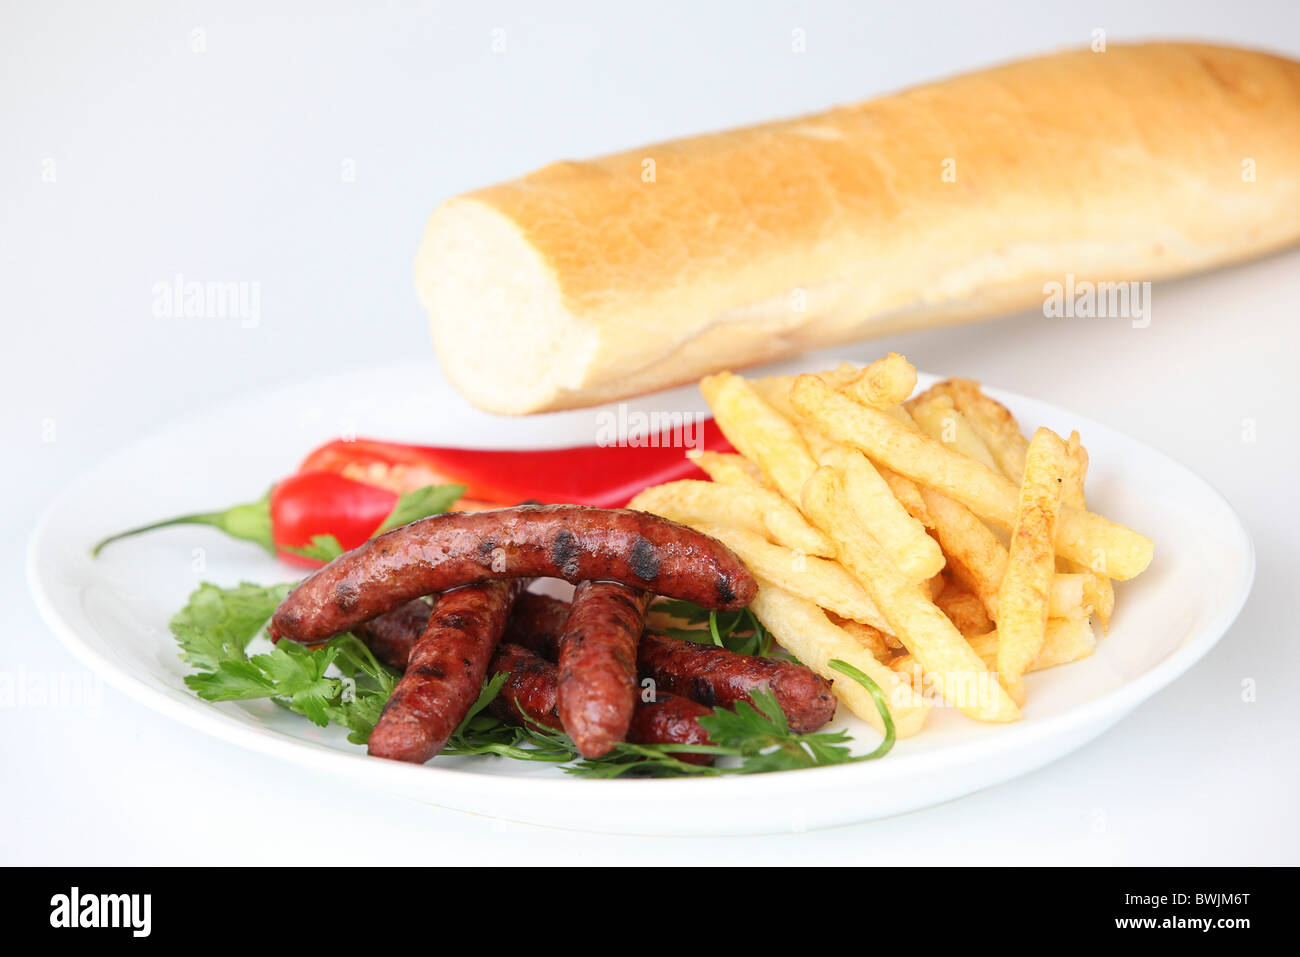 Char Grilled Merguez sausages with french fries - Stock Image